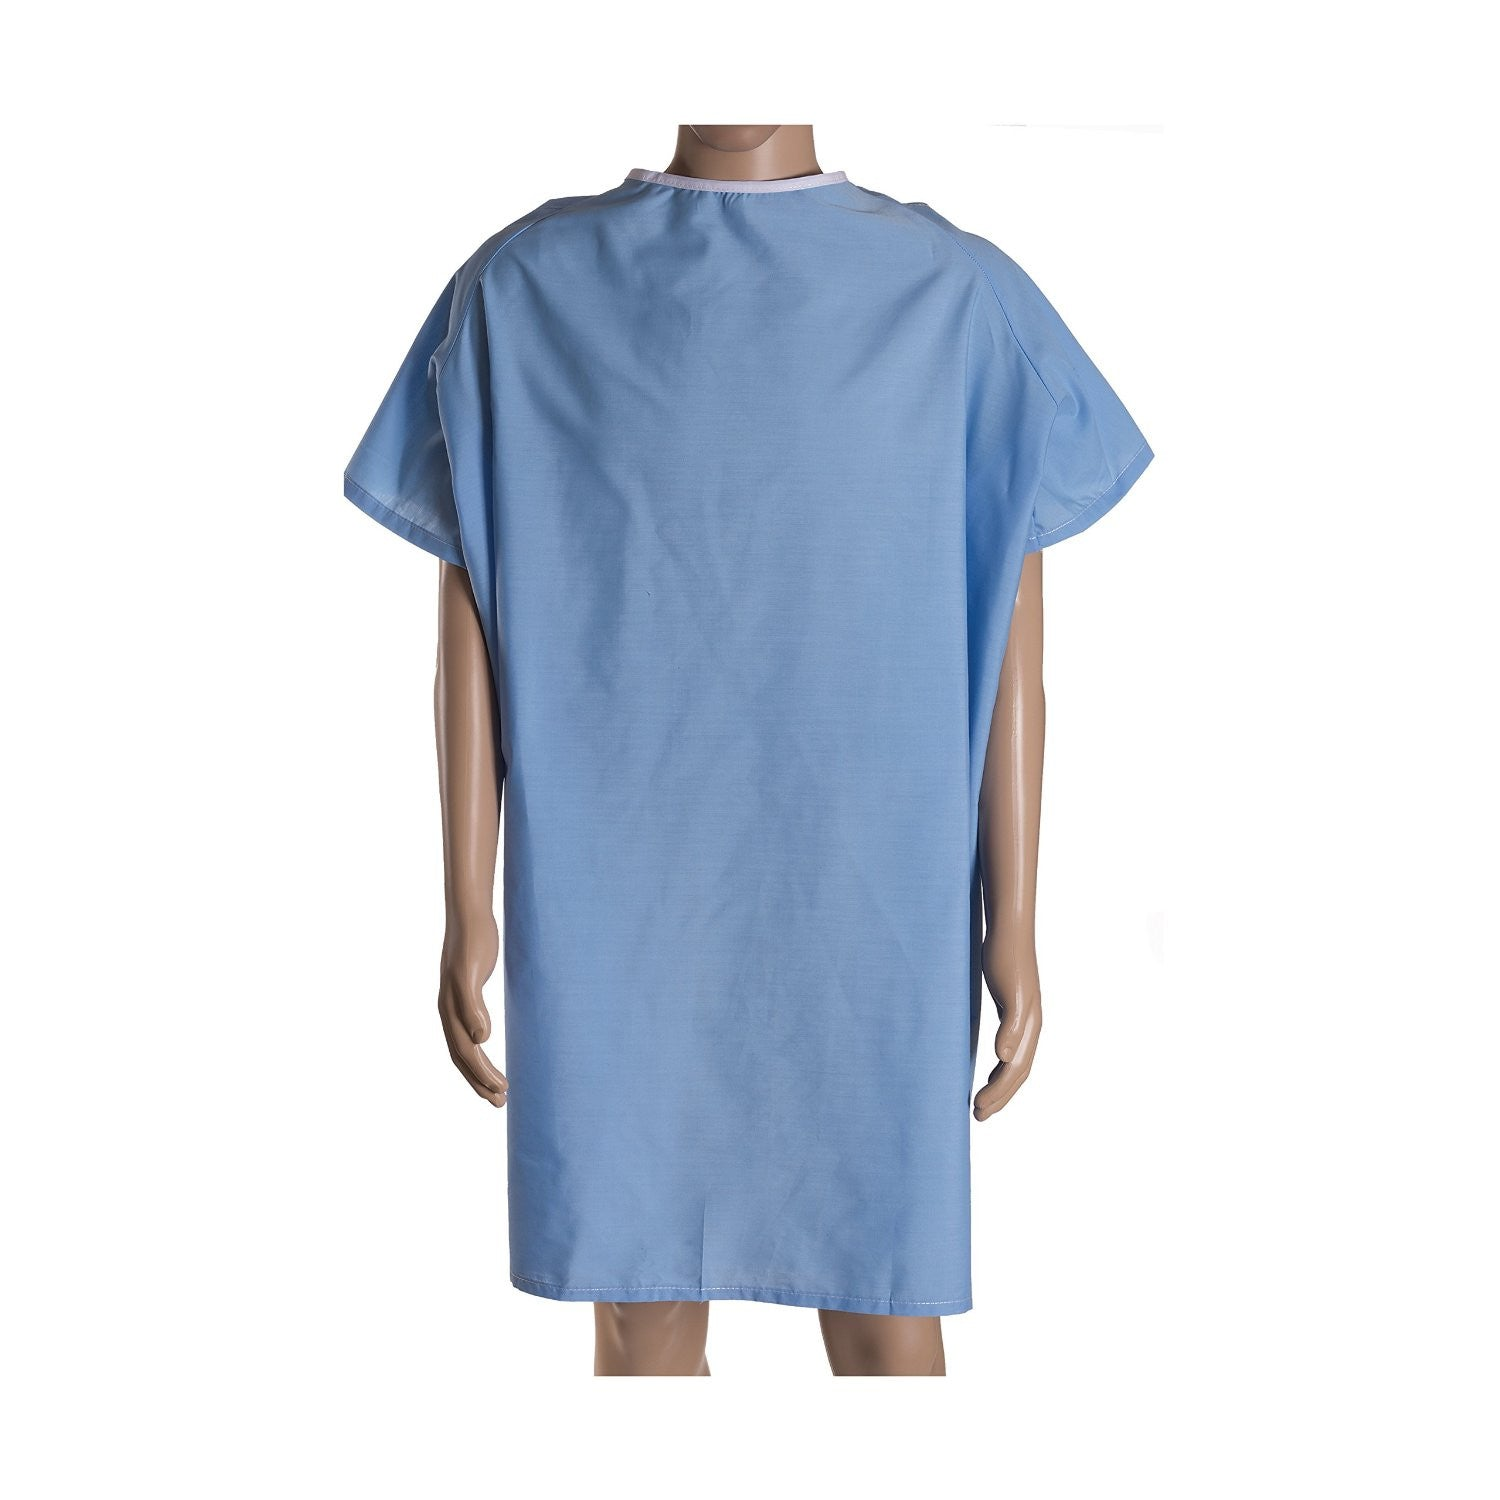 BHmedwear Congenial 3XL - 100% Cotton Hospital Gown - BH Medwear